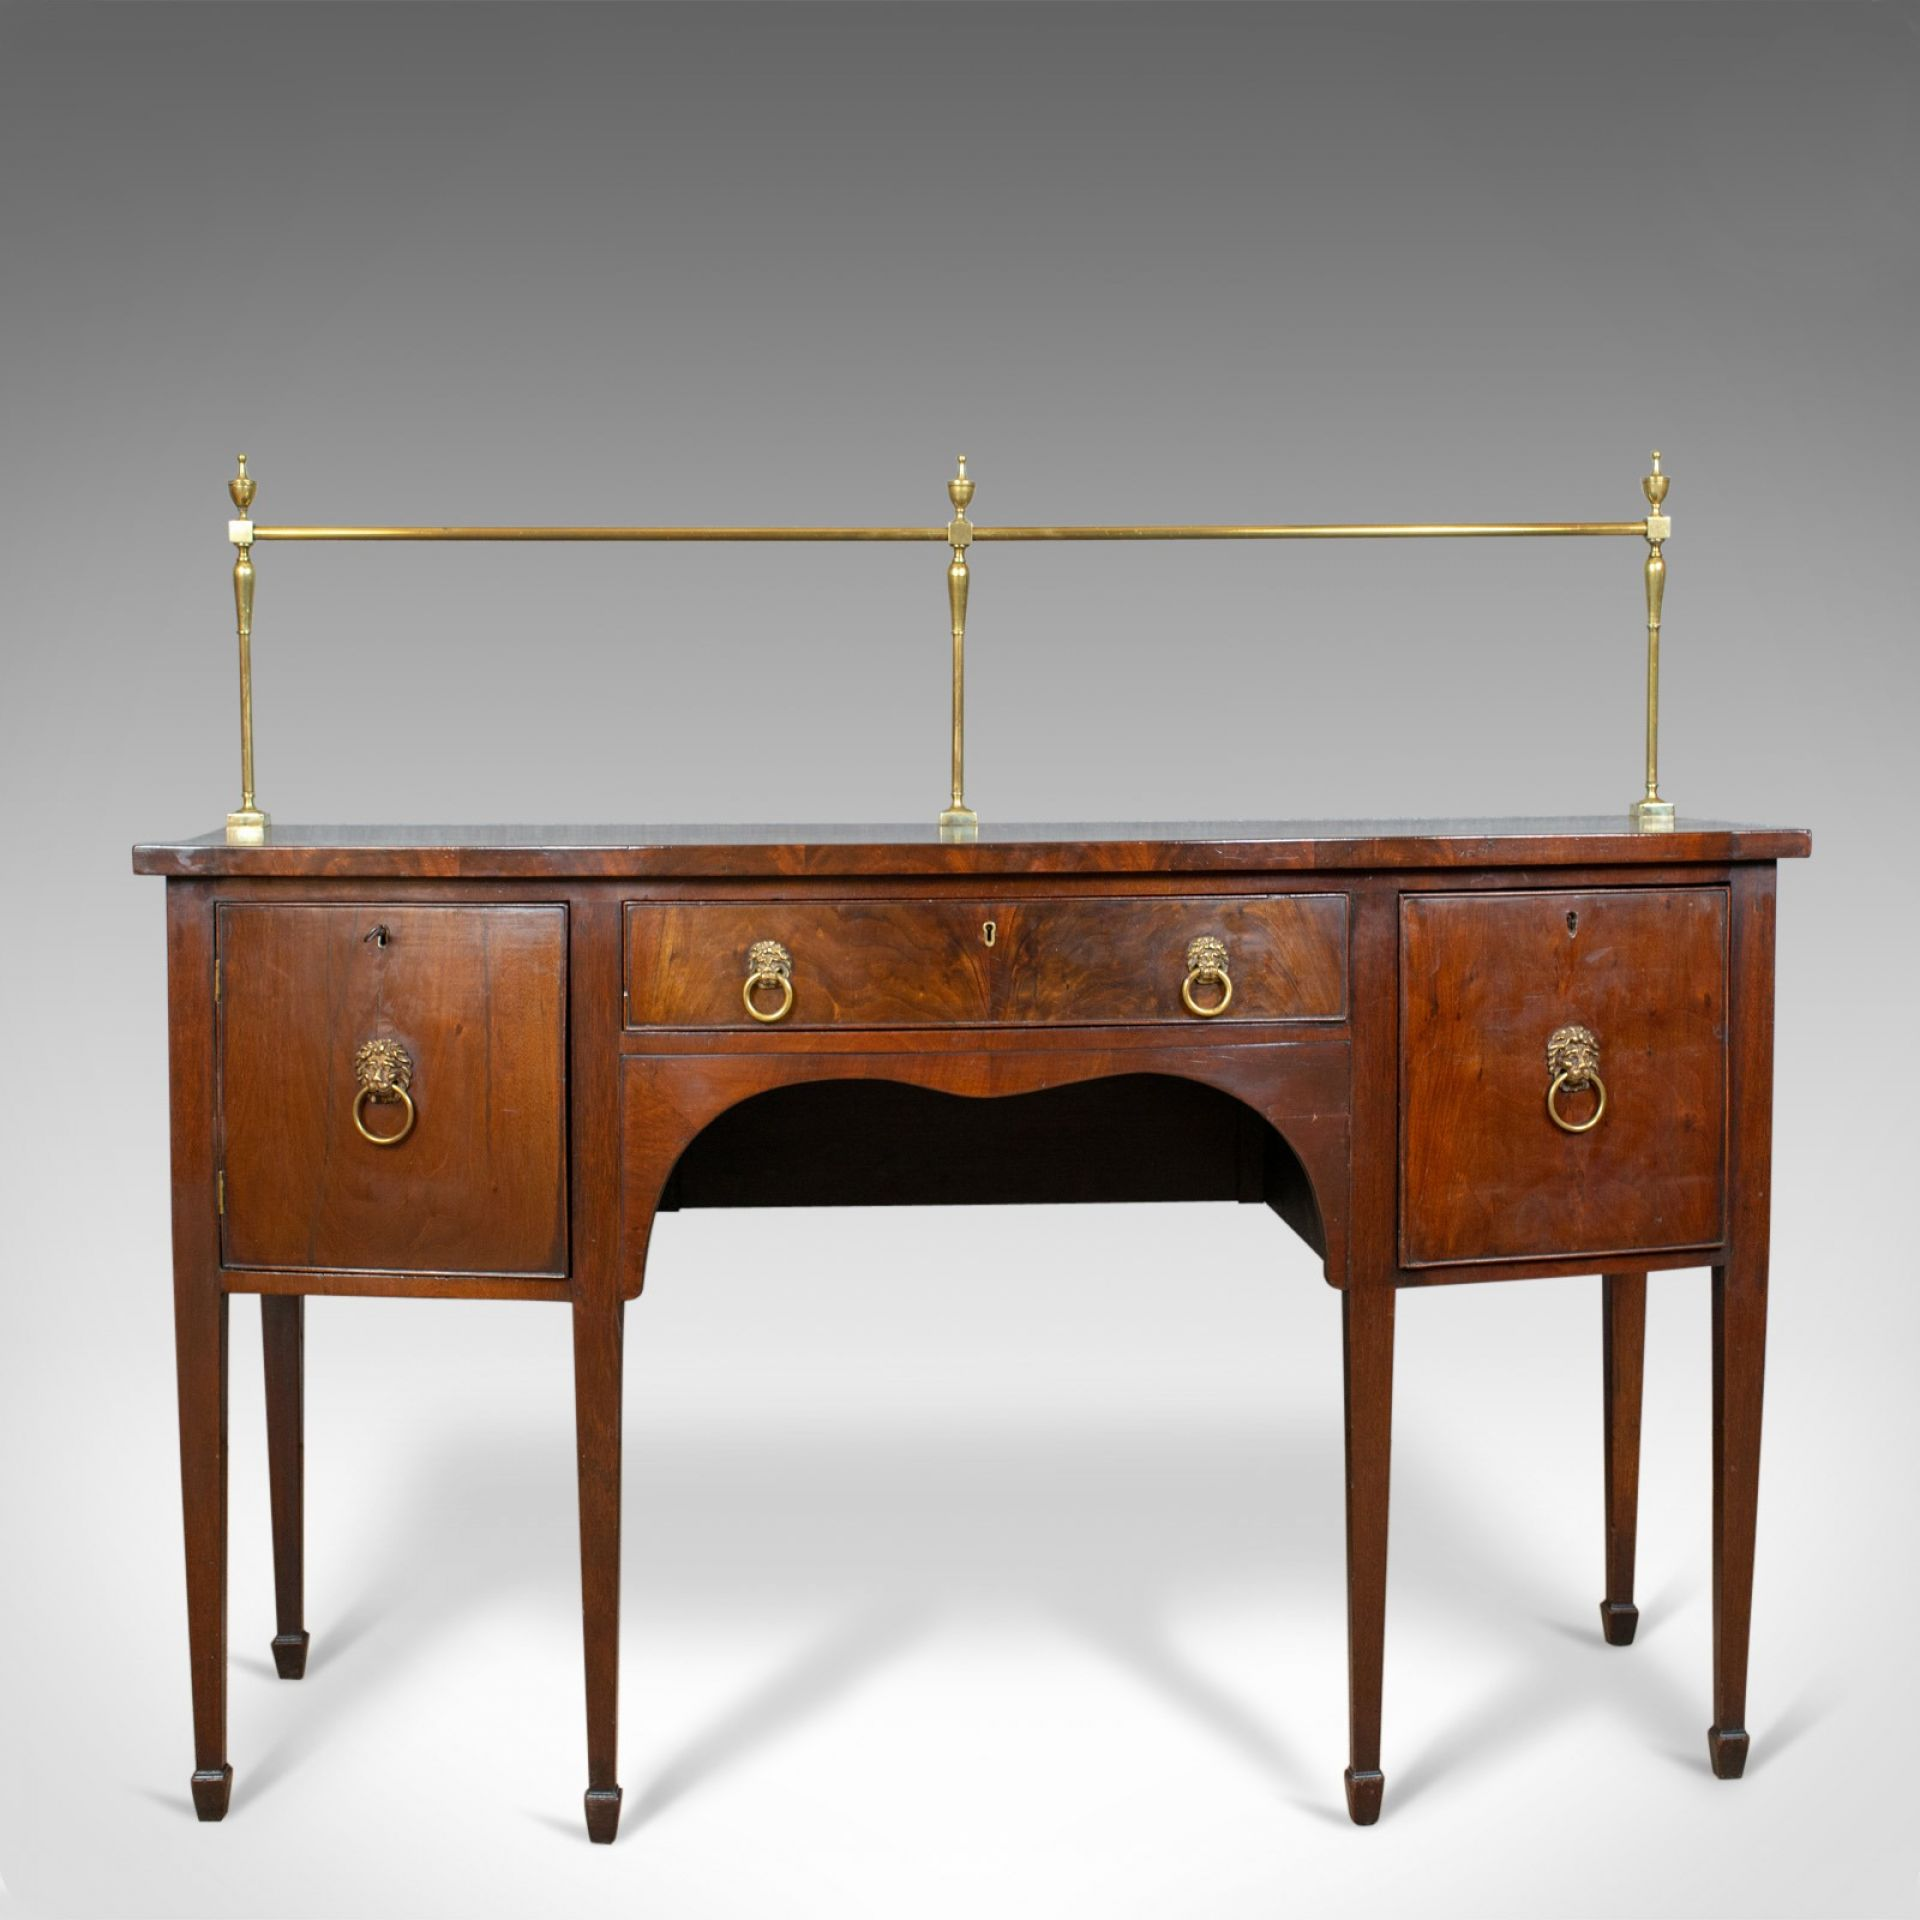 Antique Sideboard, English, Regency, Server, Mahogany, 19th Century, Circa 1830